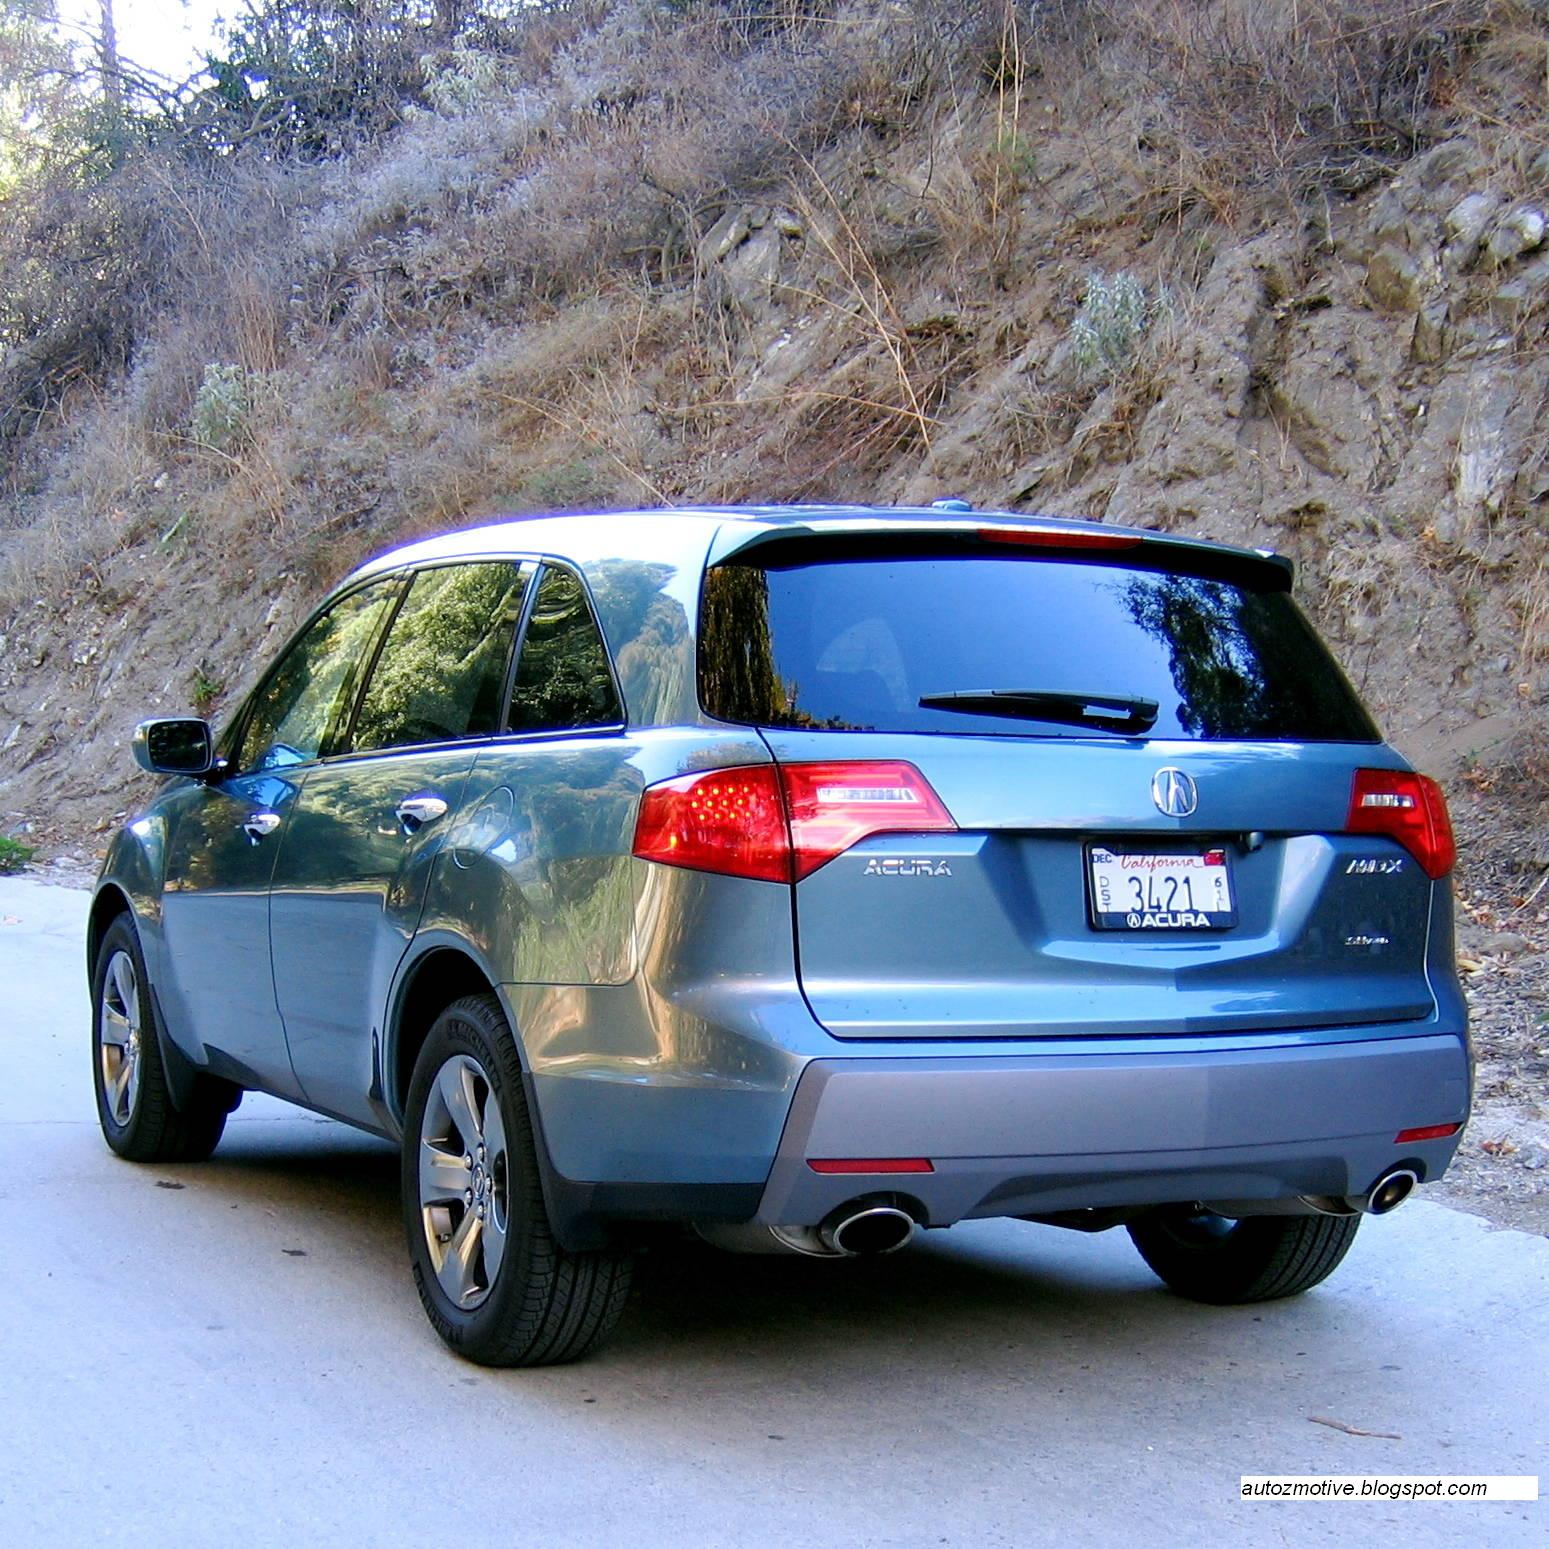 Acura 2011 Mdx: TOP SPEED LATEST CARS: 2007 Acura MDX